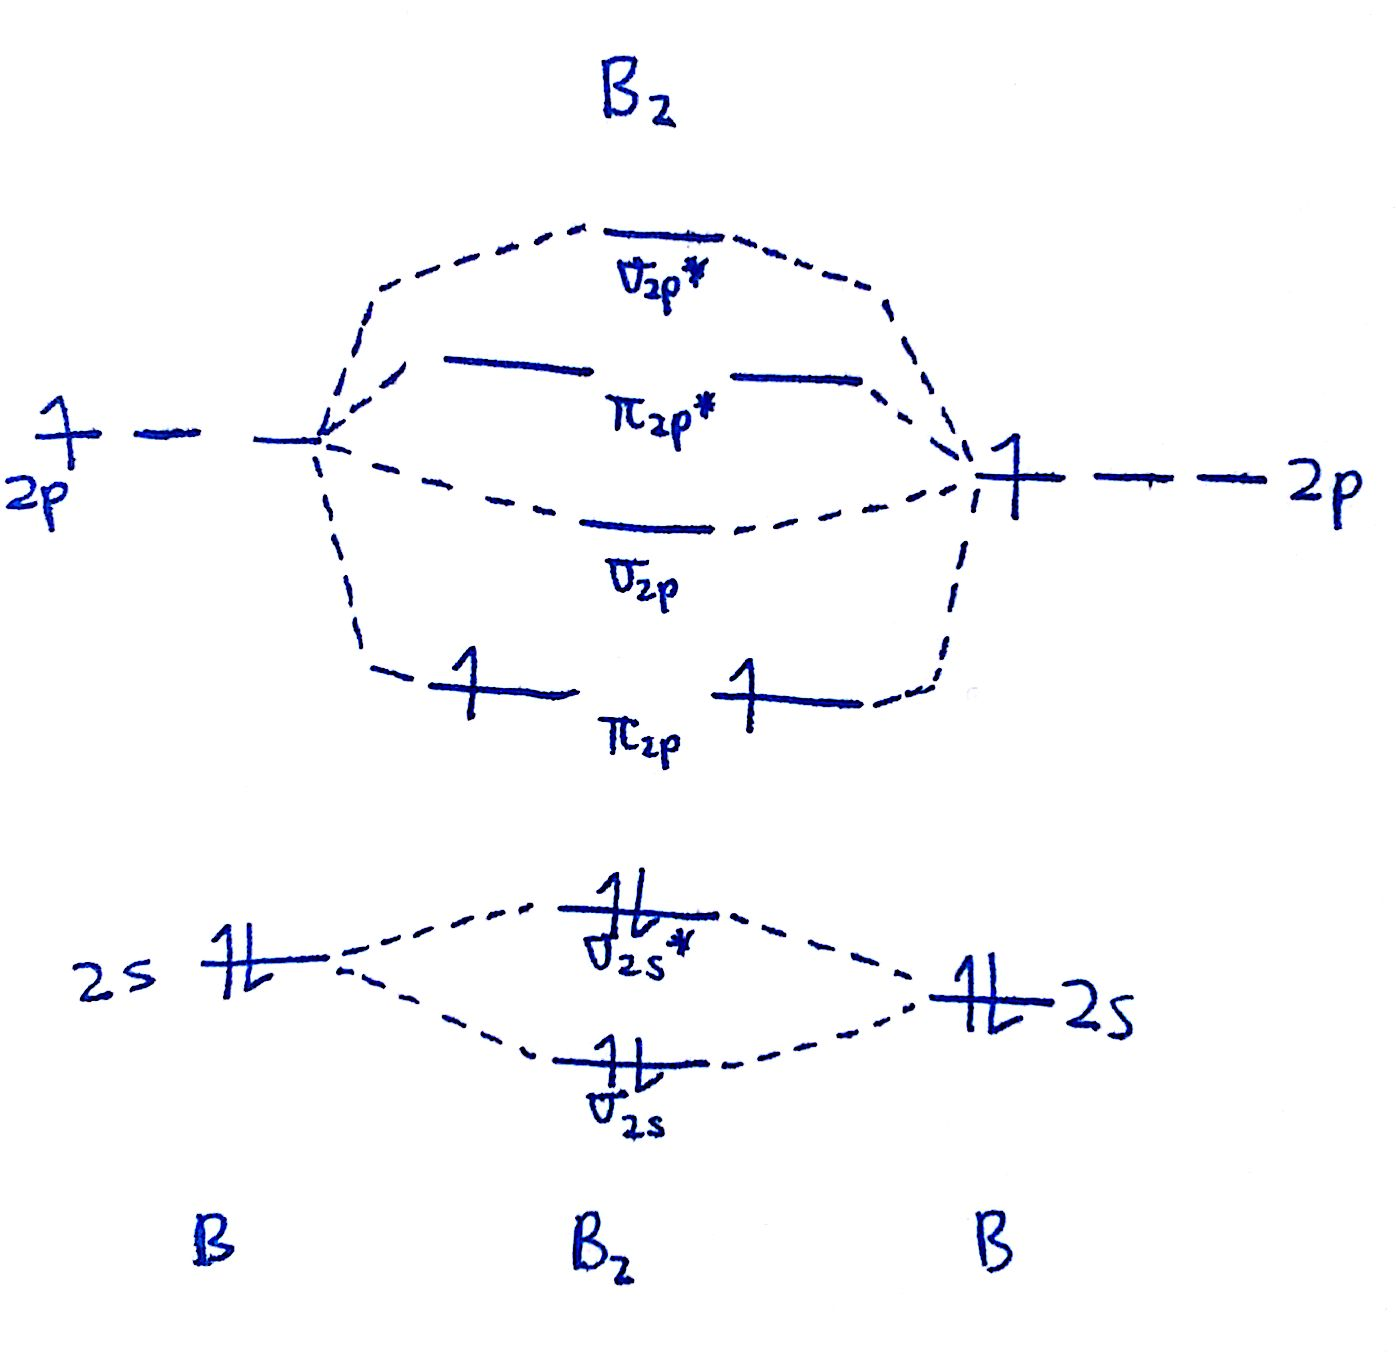 that's it for the mo diagram of b2 b 2 ! to check, count how many electrons  there are in total